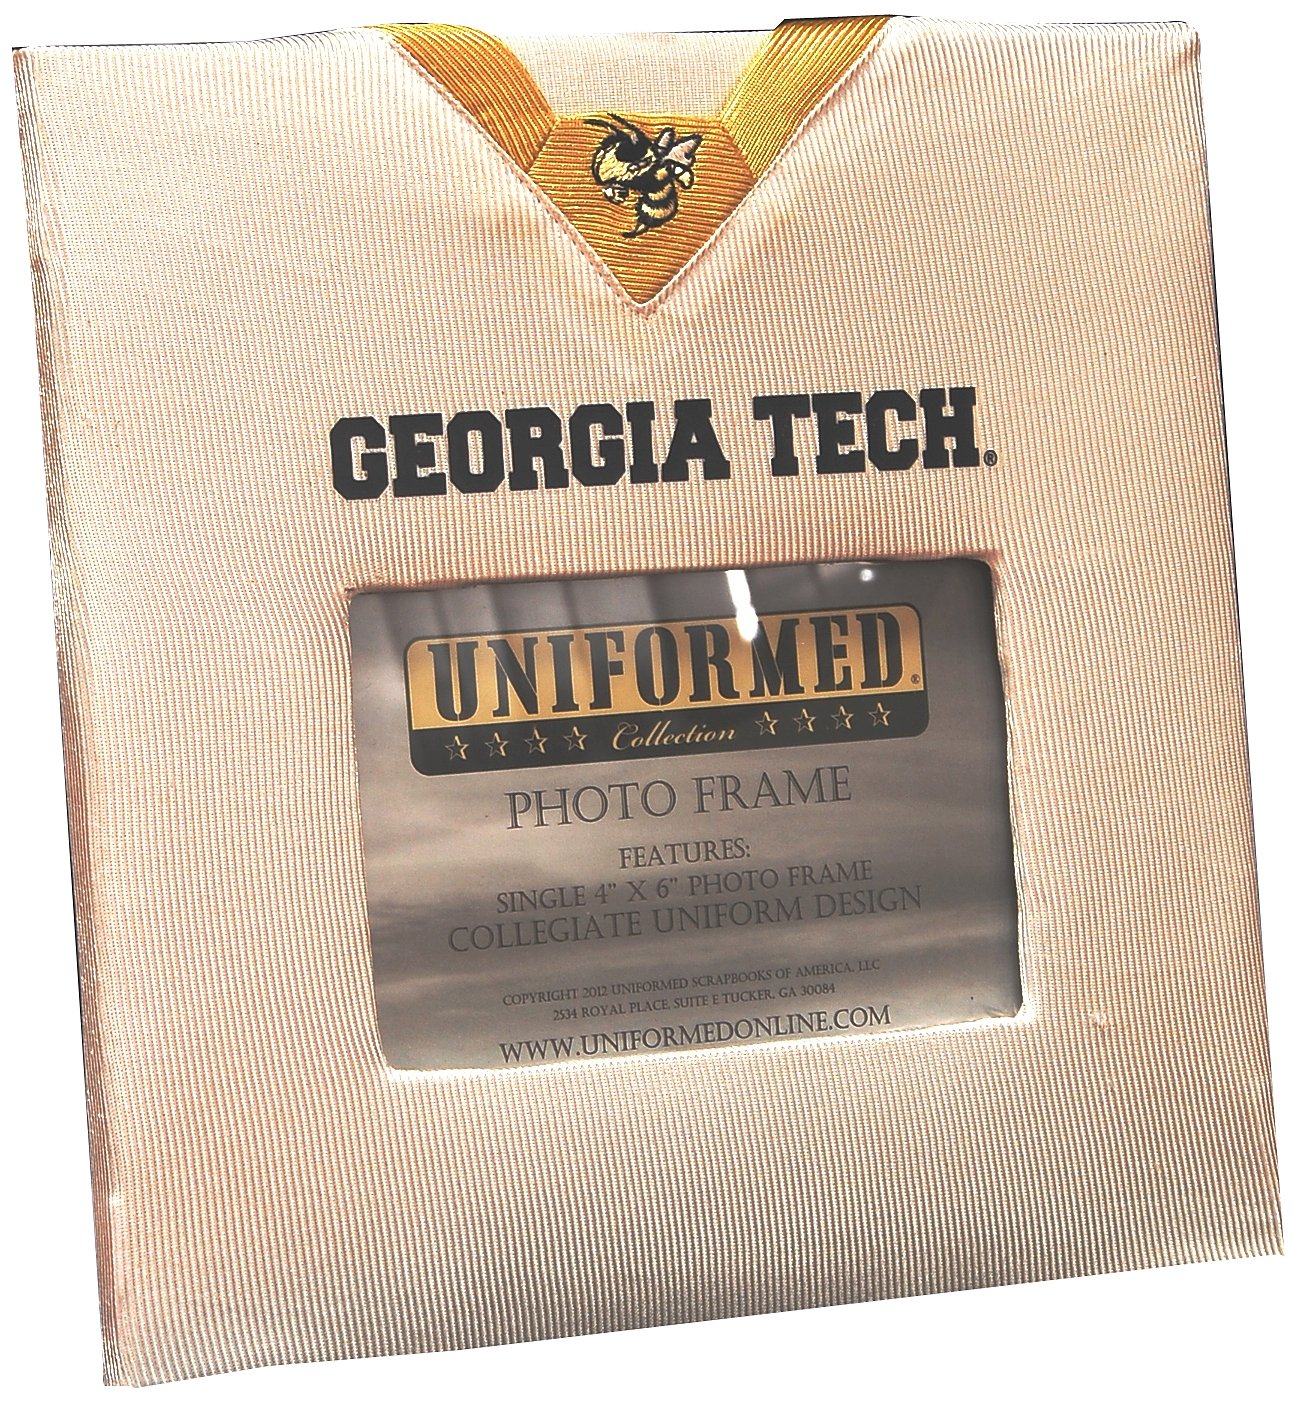 UNIFORMED Georgia Tech Picture Frame, 4 by 6-Inch